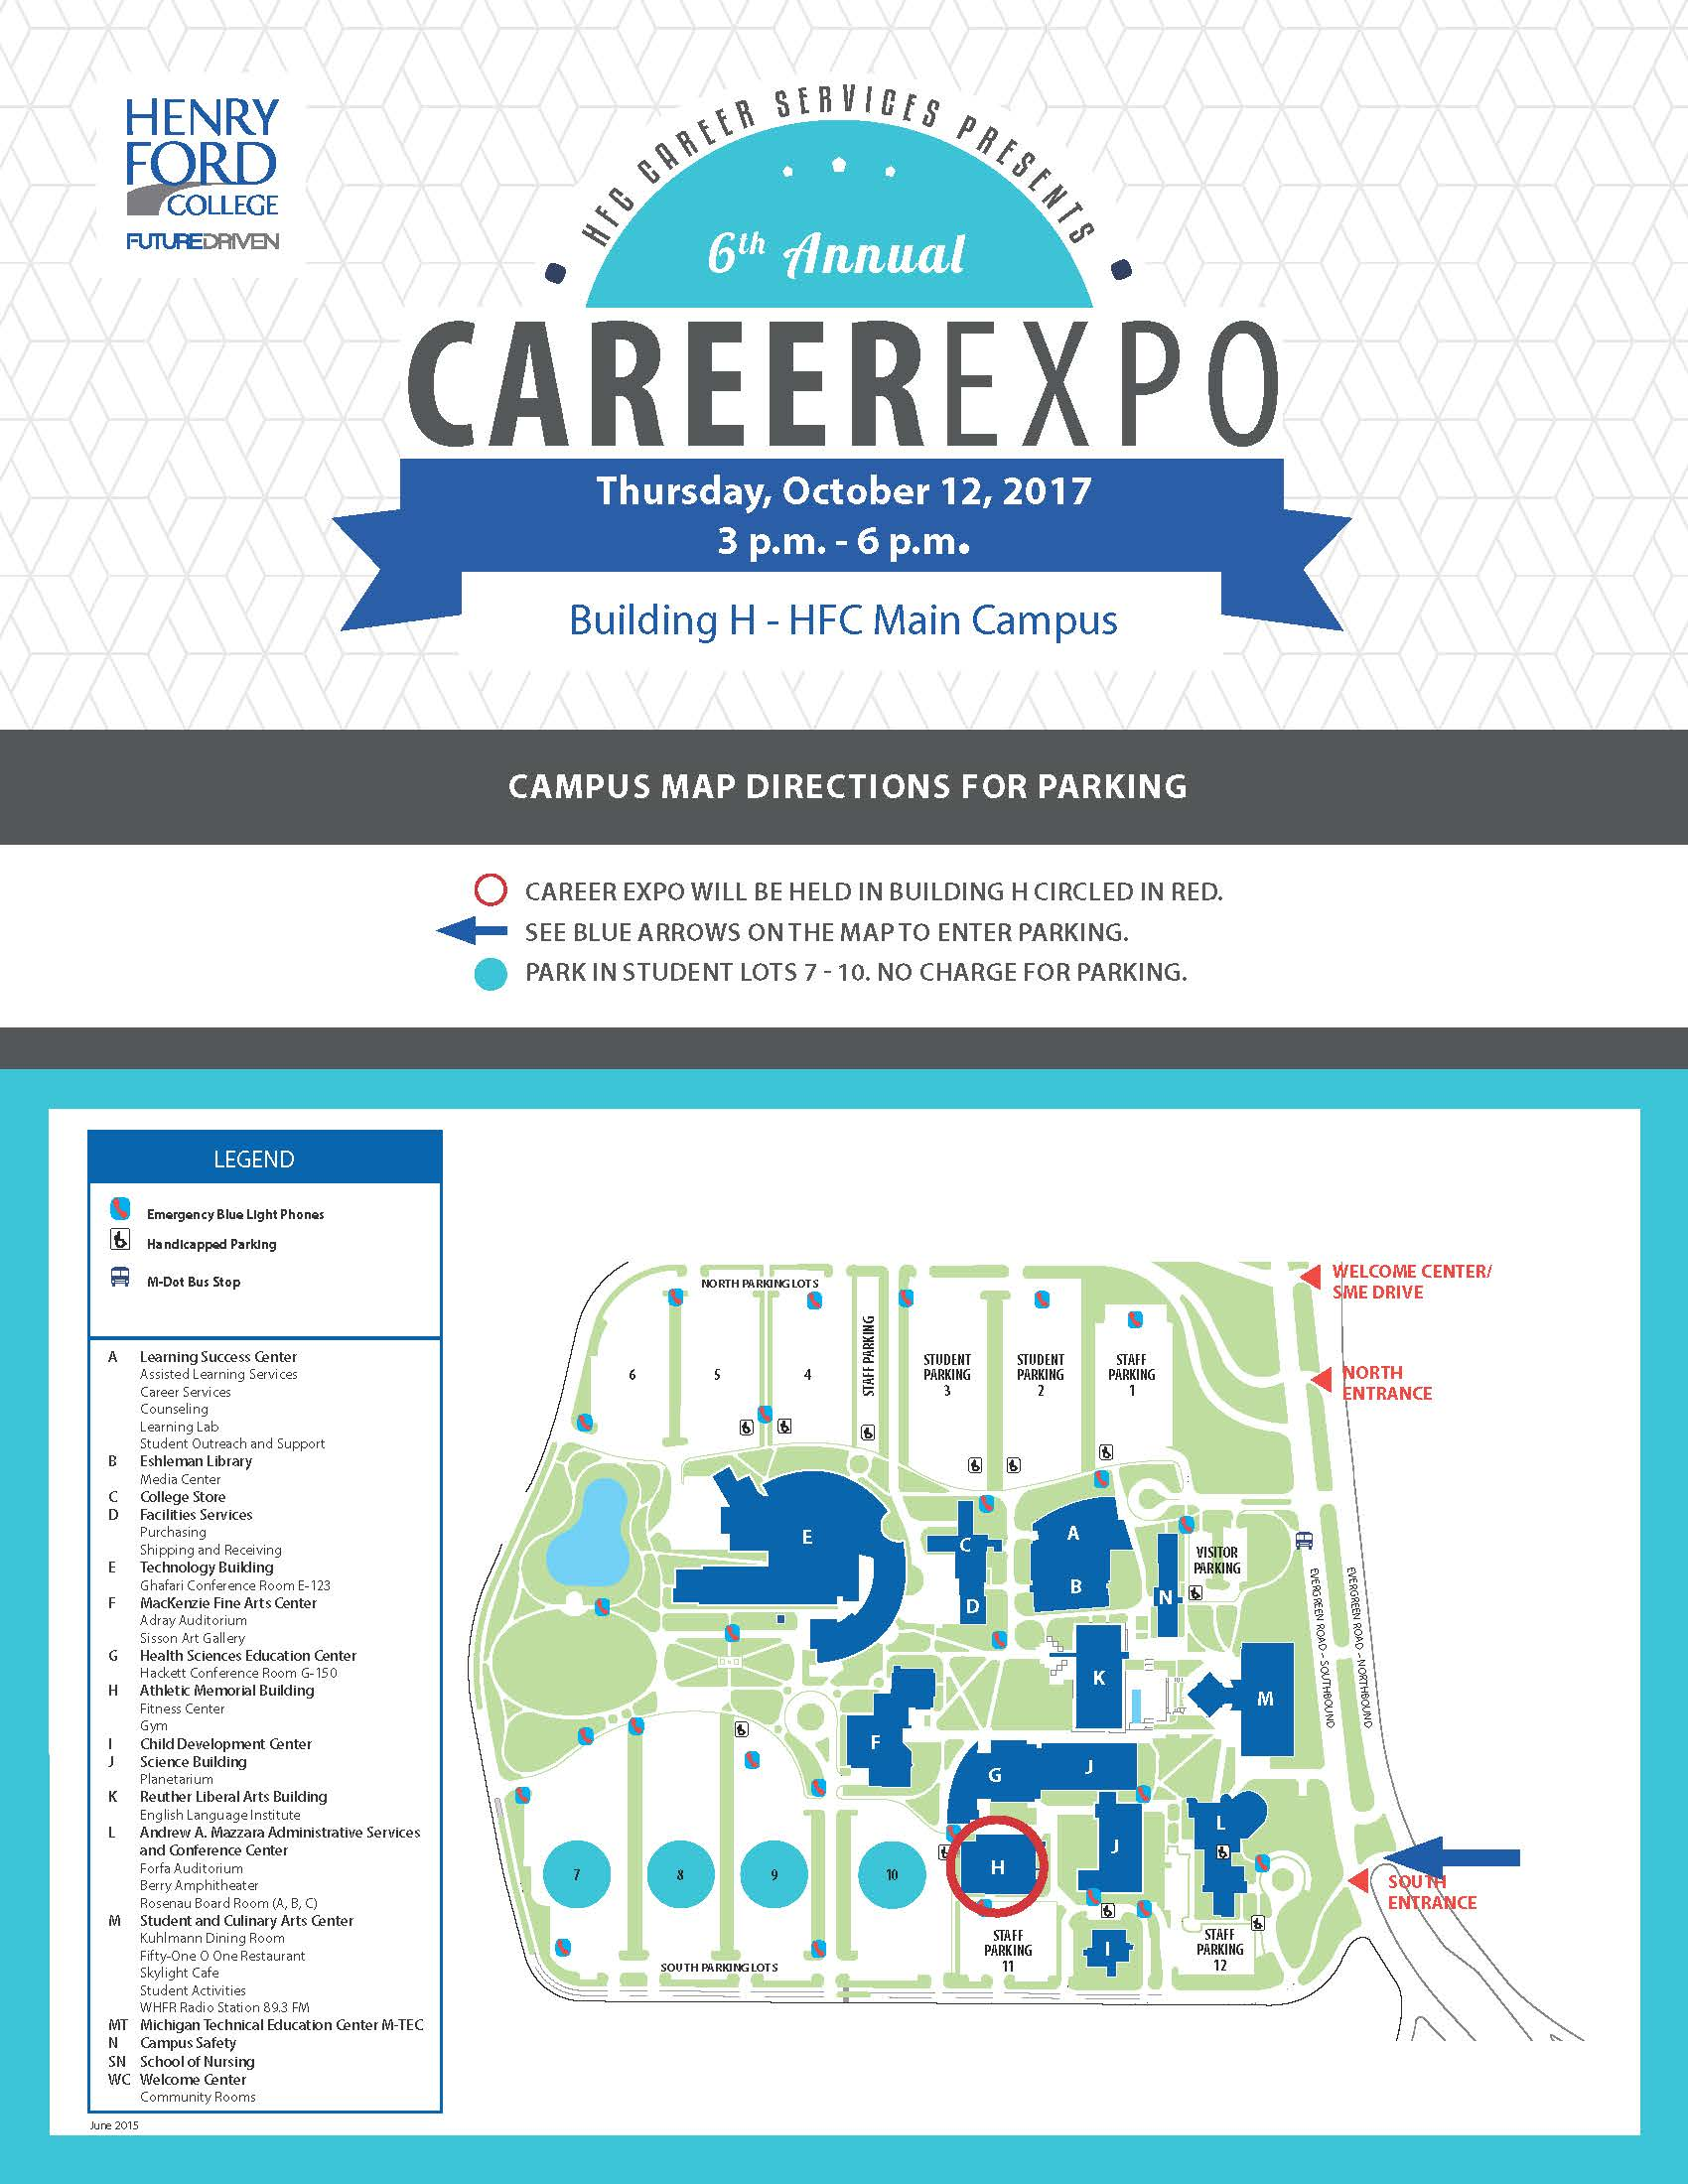 henry ford campus map Career Expo Information For Employers Career Services henry ford campus map